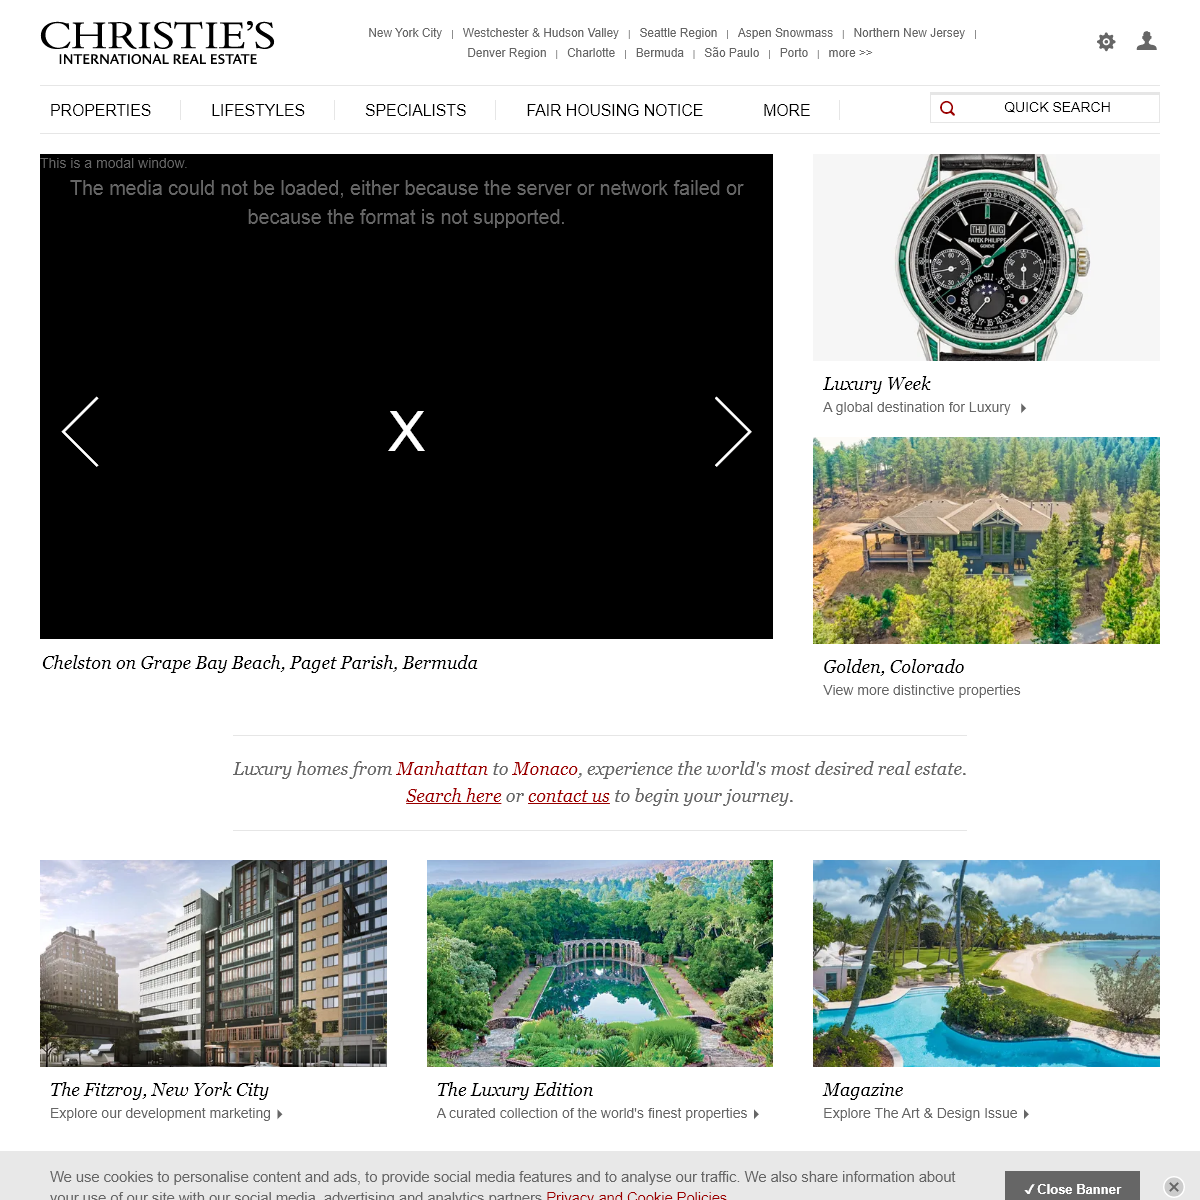 Exceptional Luxury Homes, Real Estate and Properties for Sale - Christie`s International Real Estate